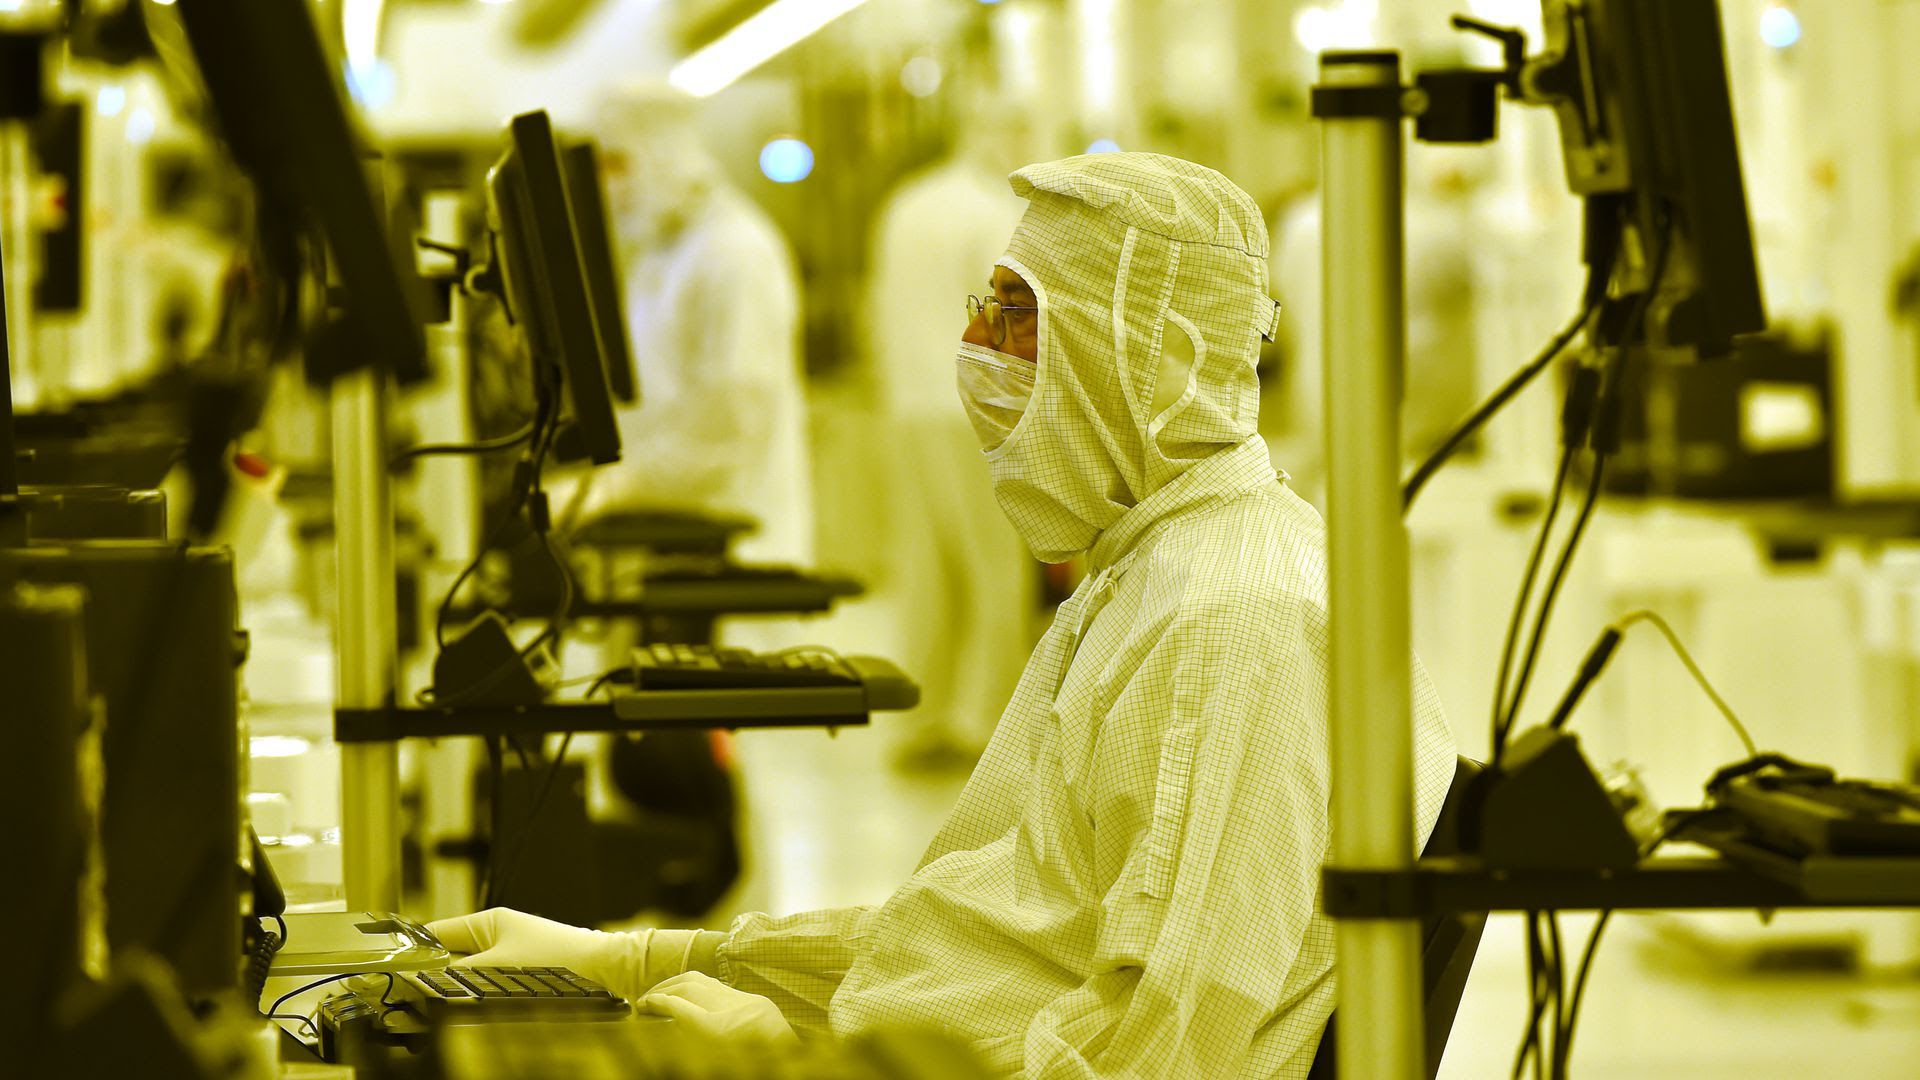 Worker in mask and suit works in factory